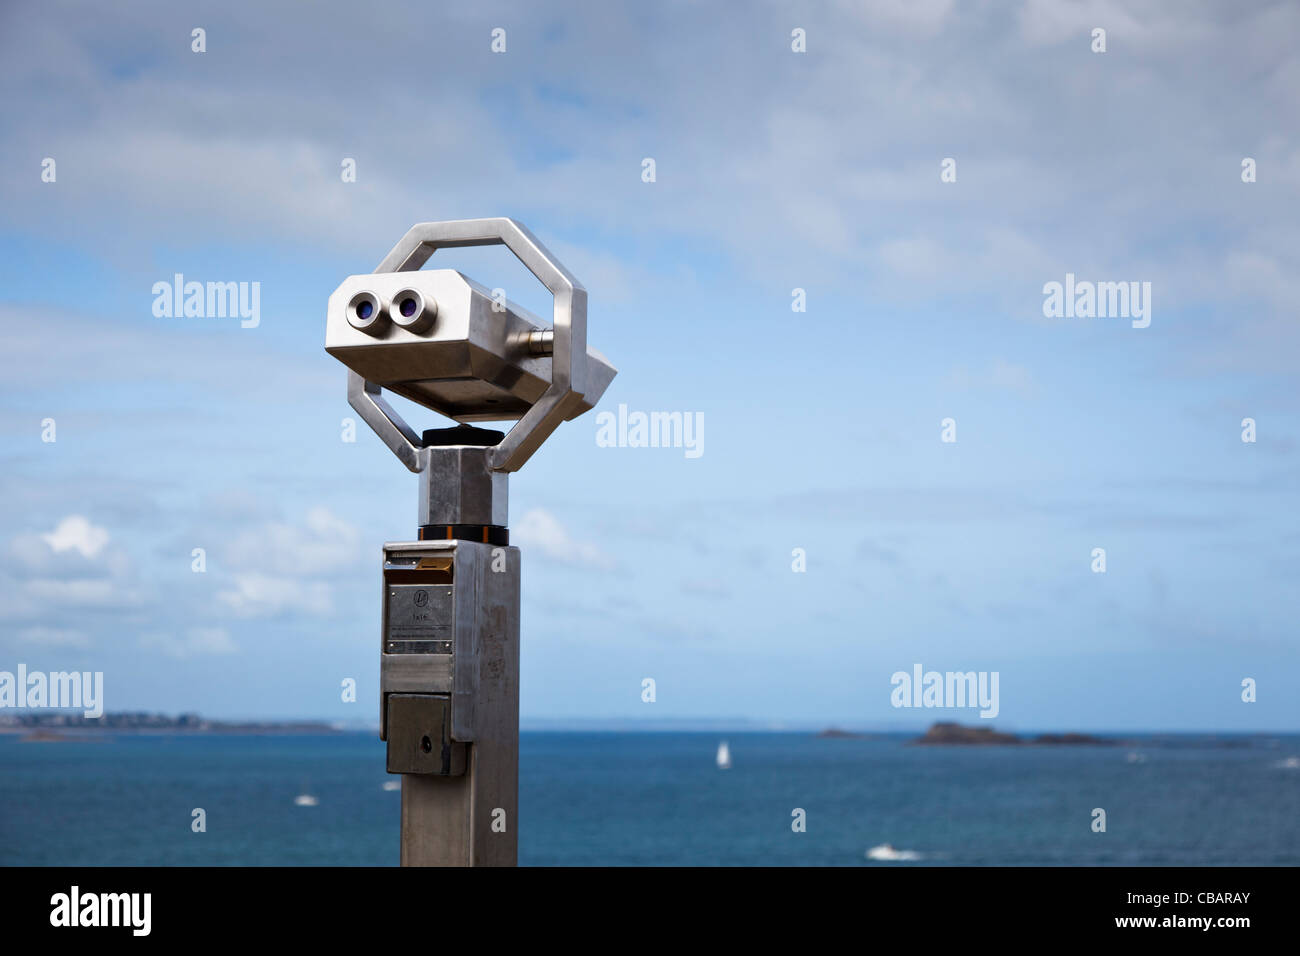 Telescope overlooking the bay at a coastal town in france - Stock Image